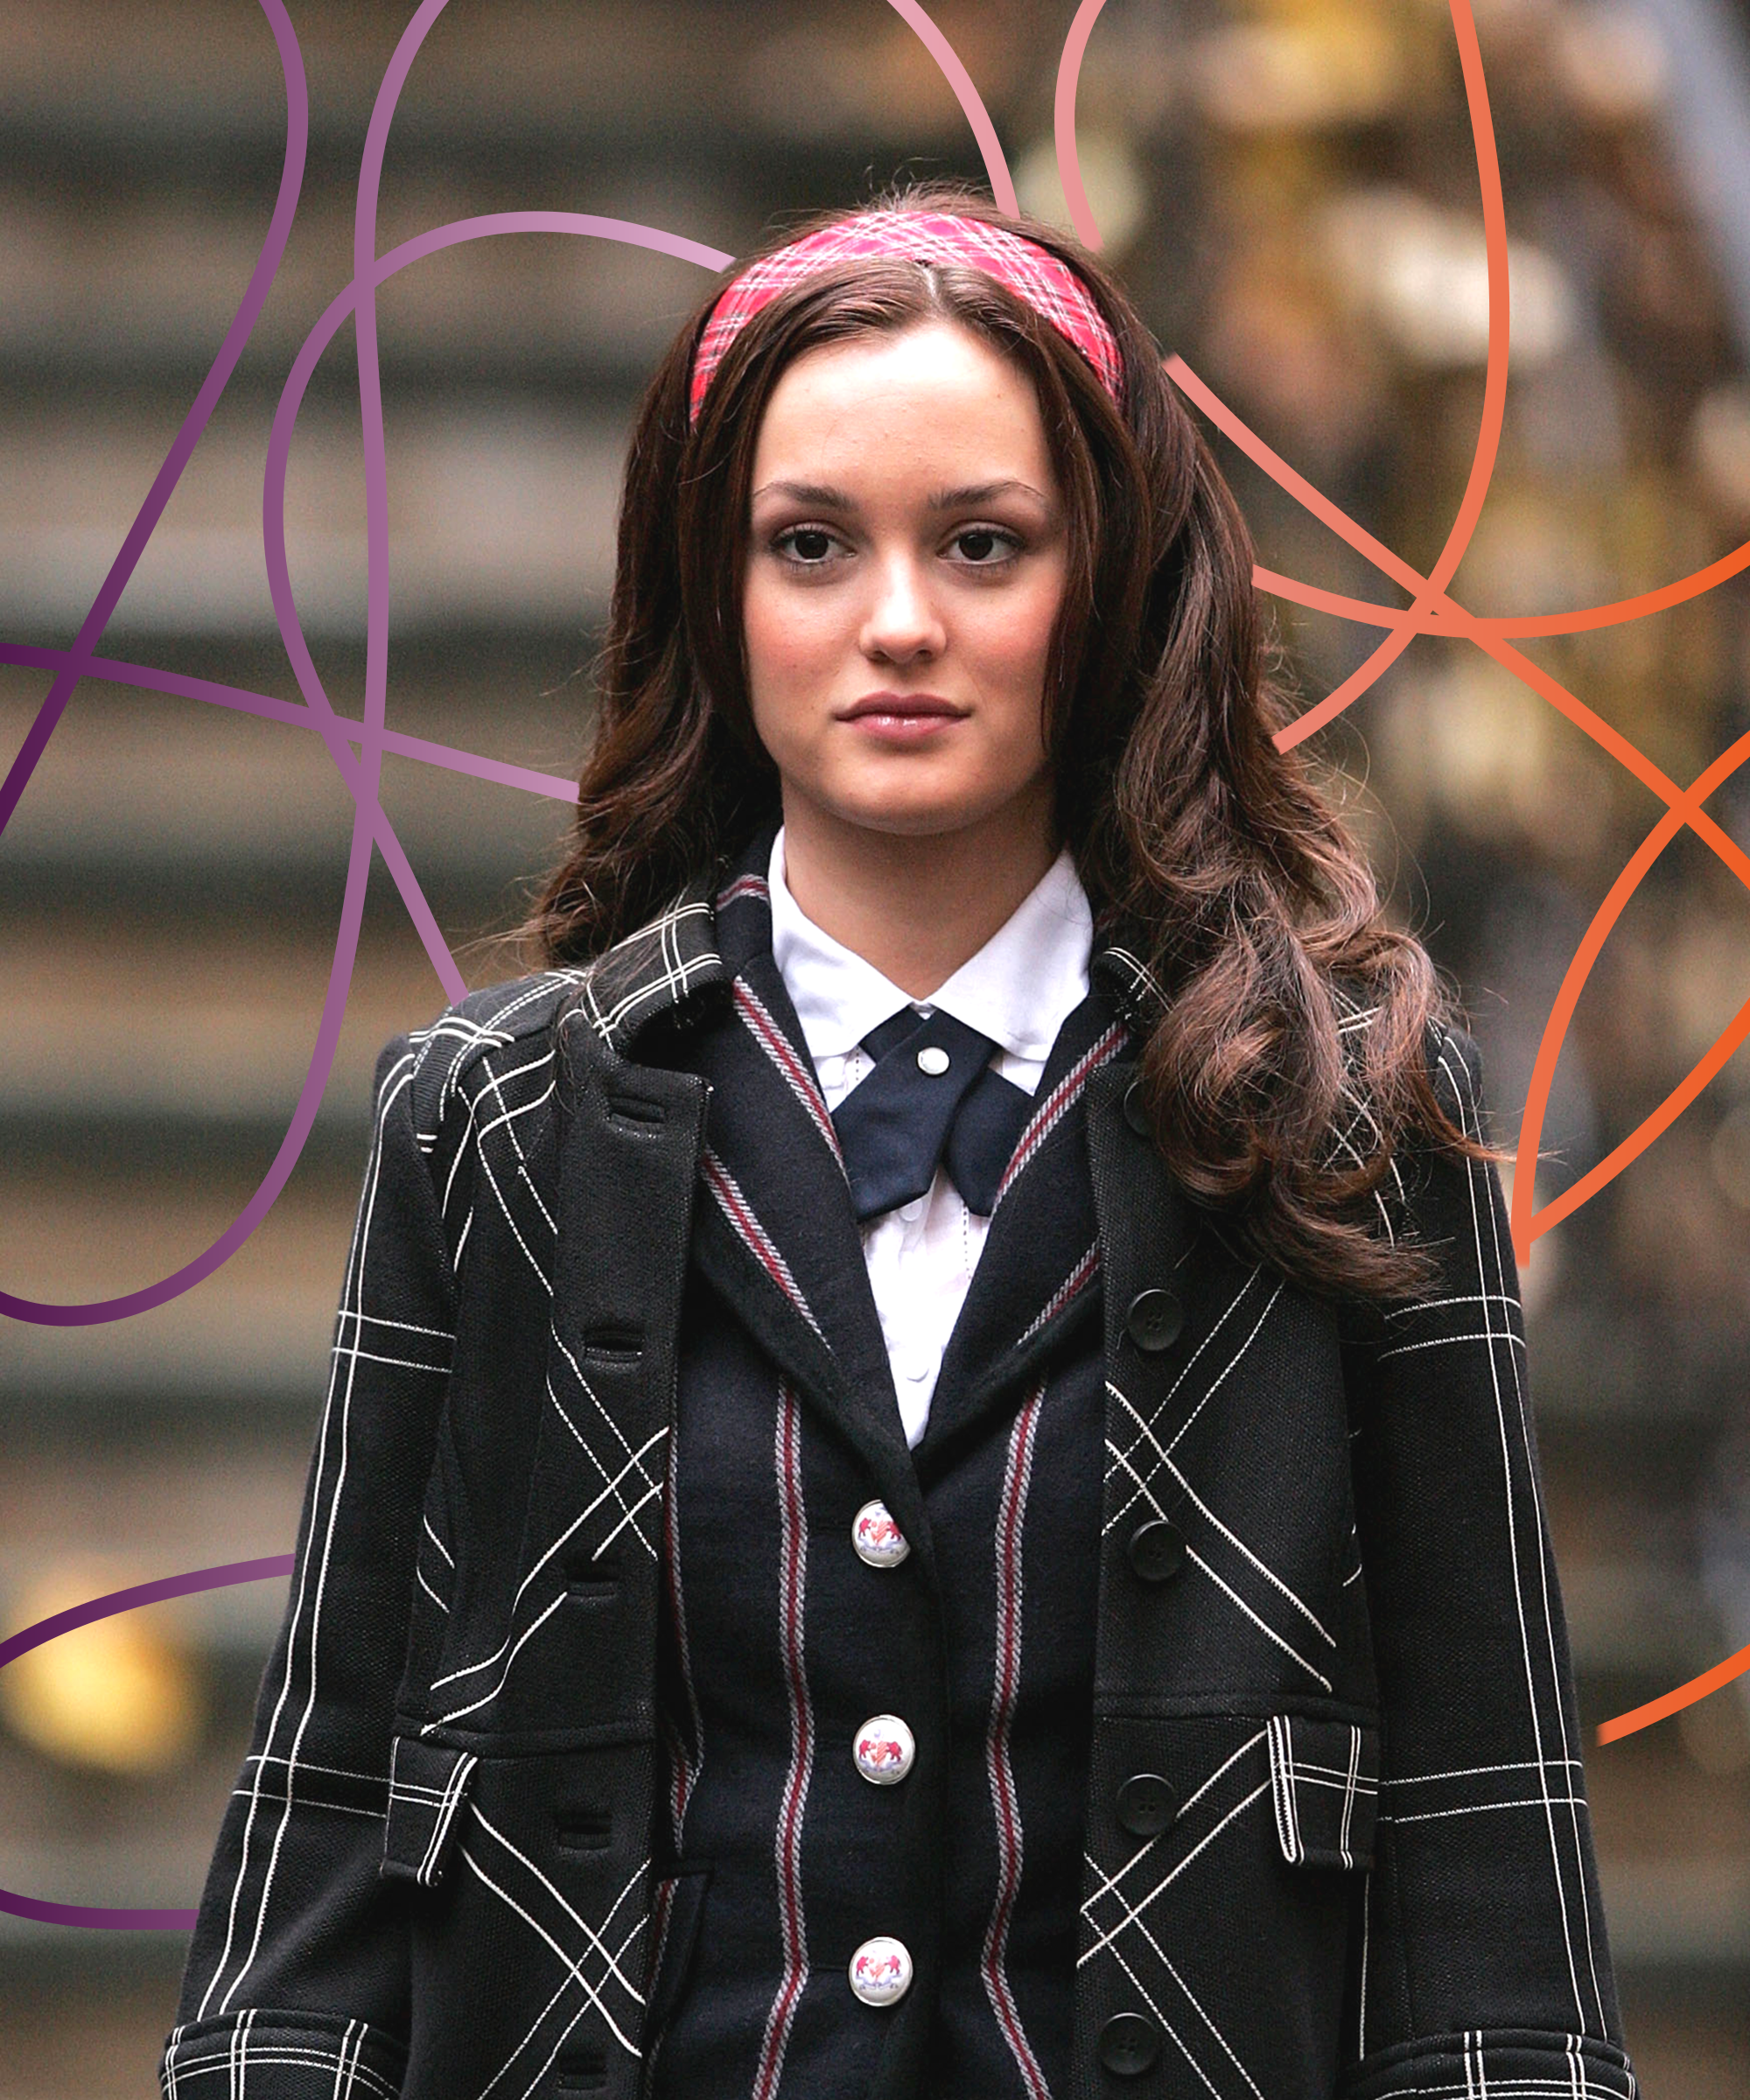 Leighton Meester Best Gossip Girl Hair